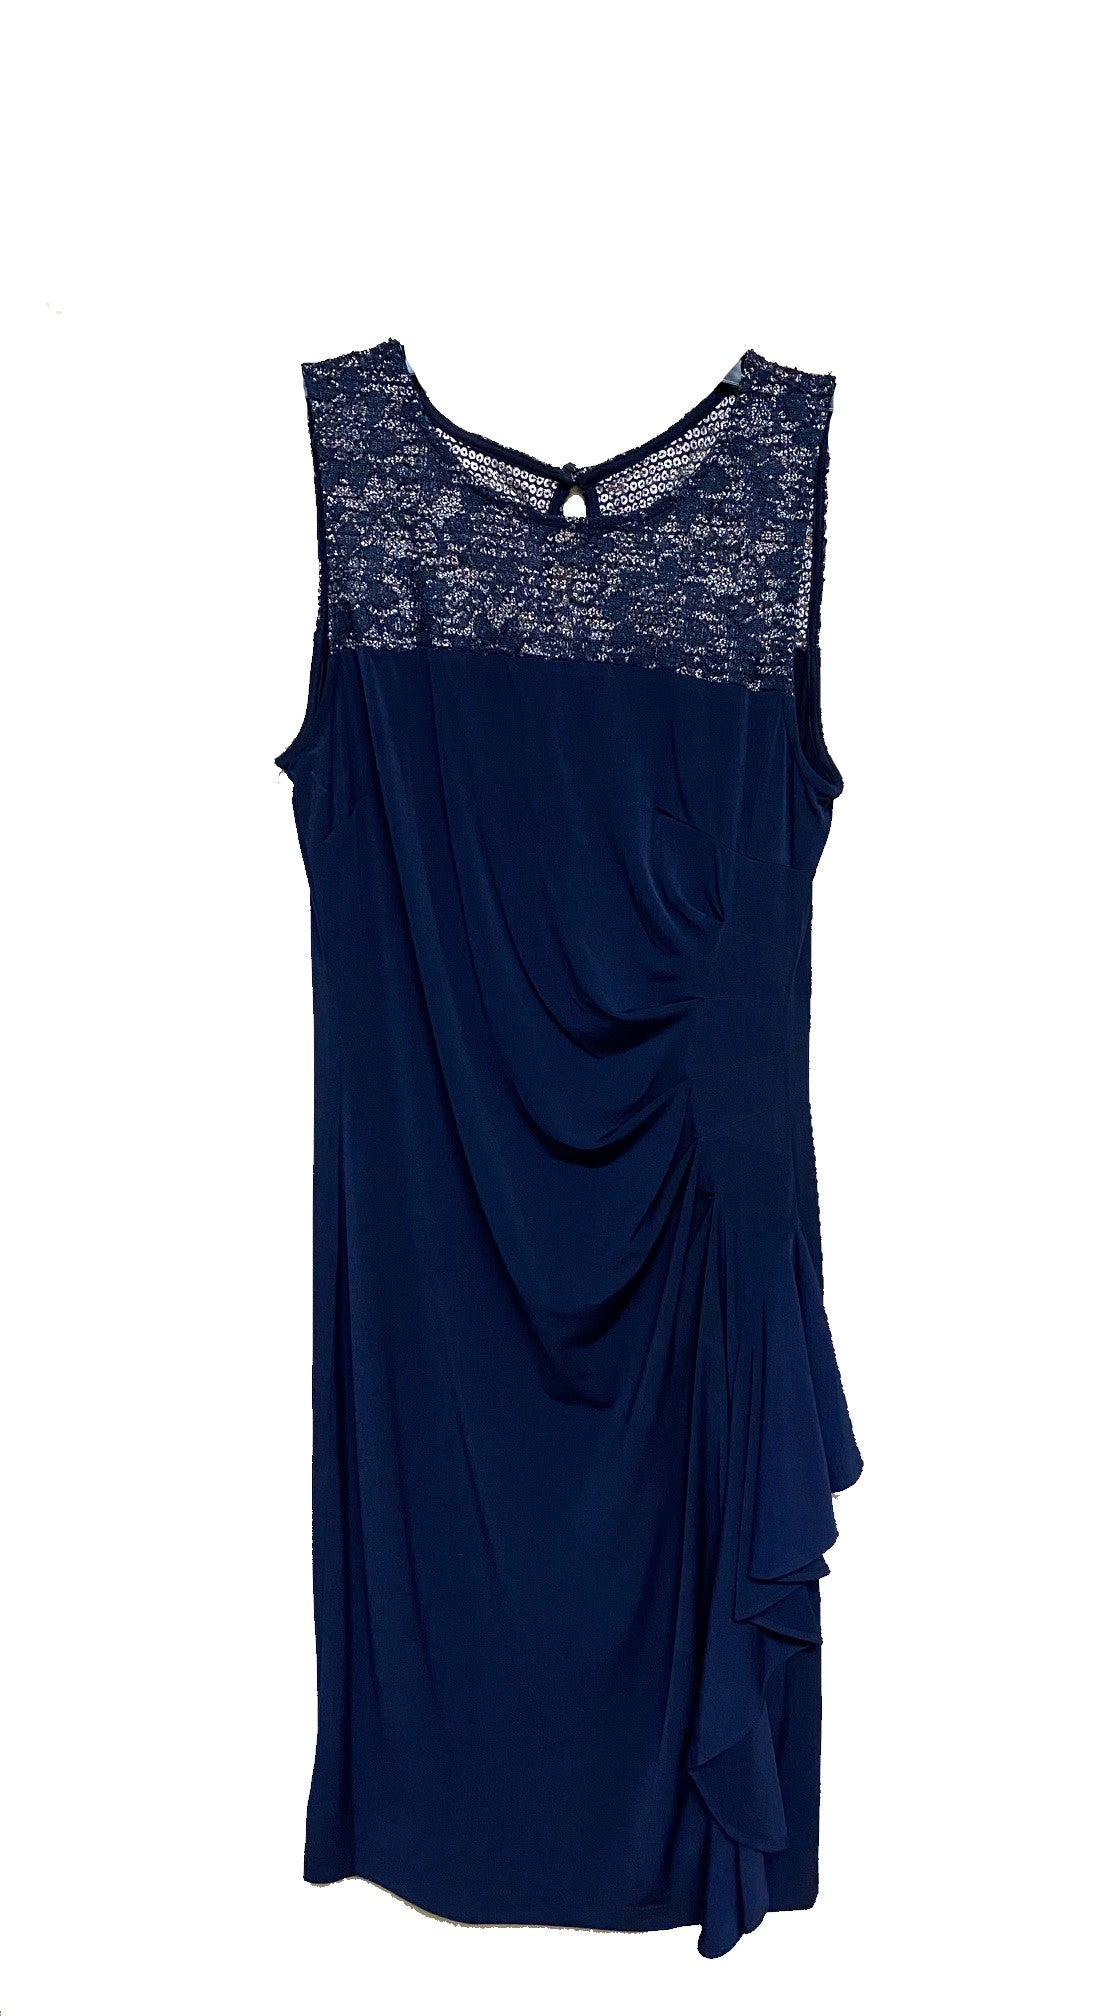 Sleeveless Lace Detail Cocktail Dress